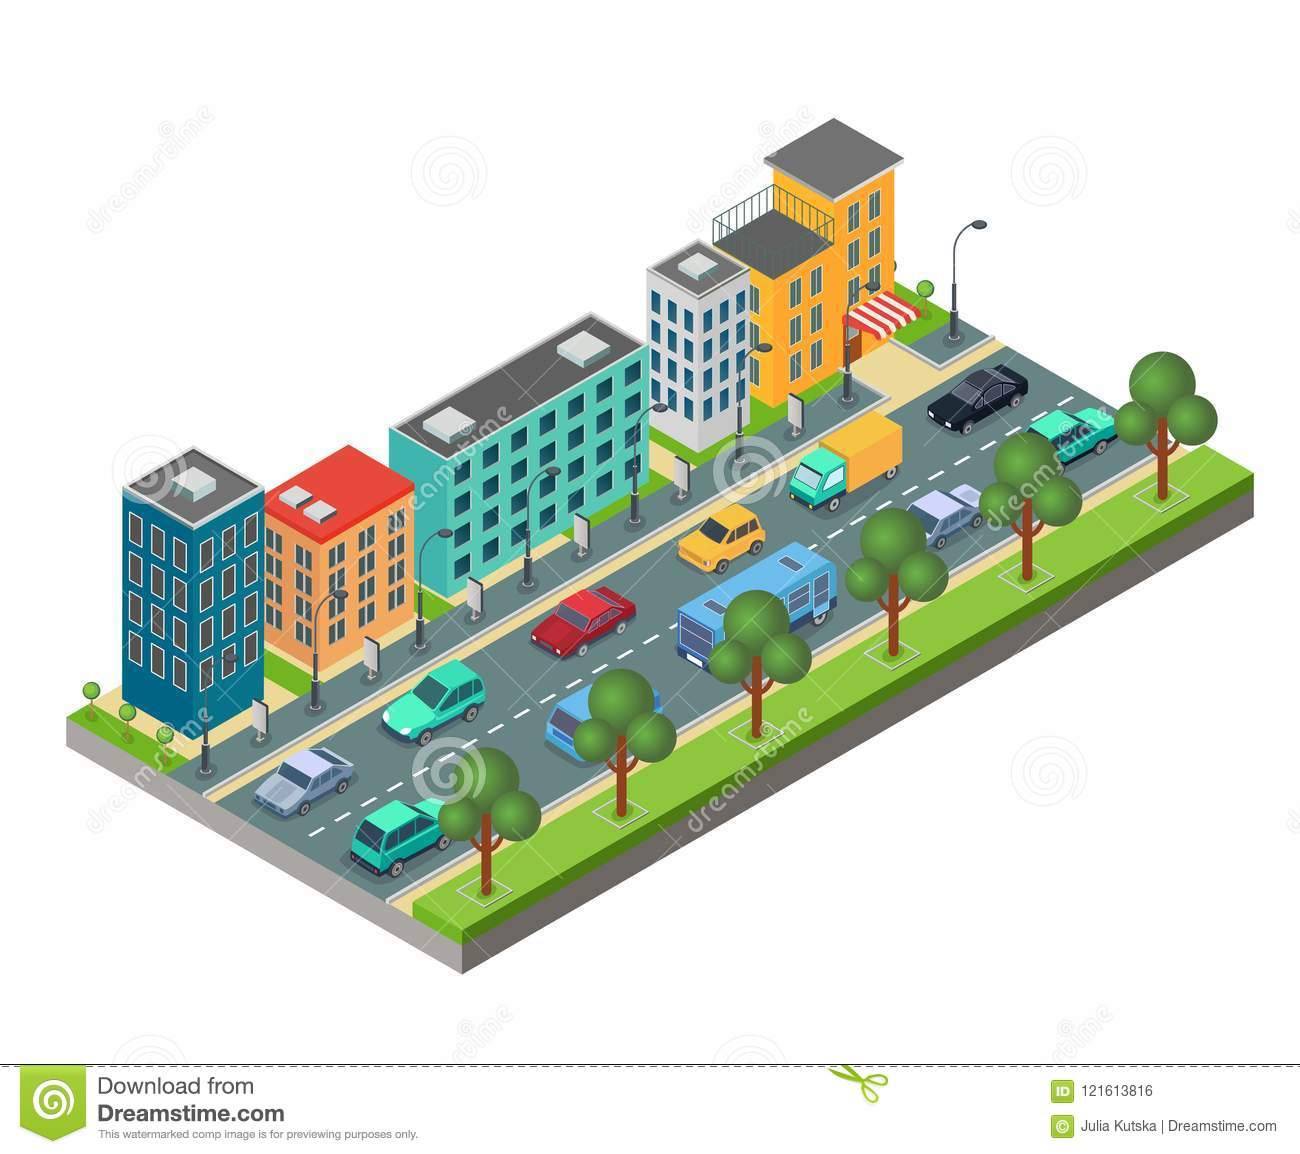 Isometric element of city road with buildings and cars in traffic jam isolated on white background.